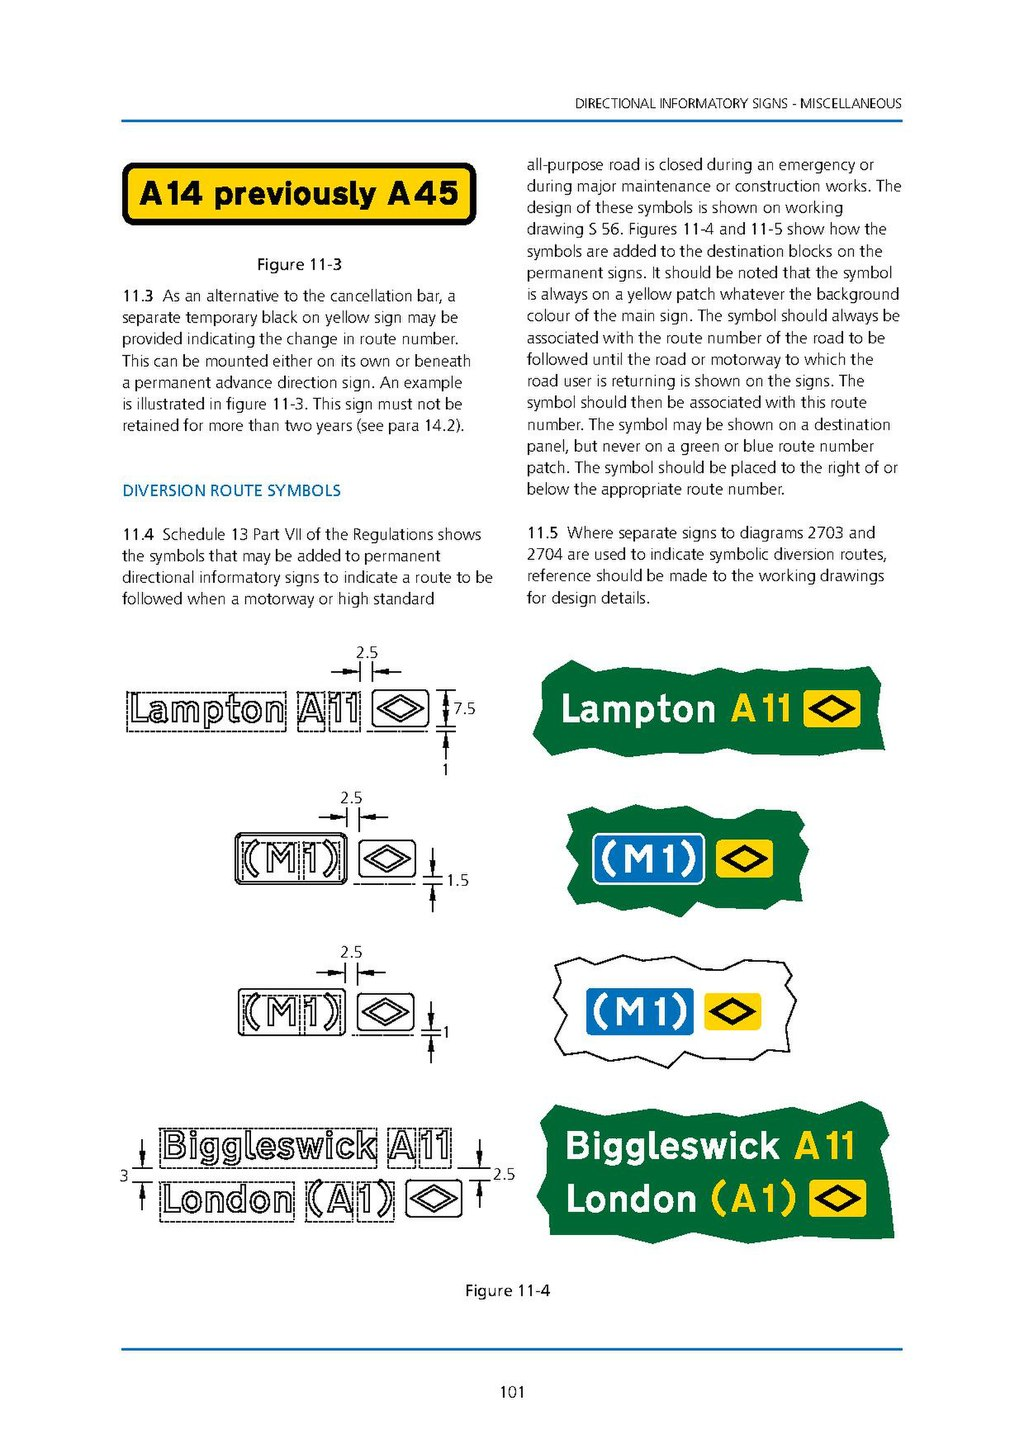 Pageuk traffic signs manual chapter 7 the design of traffic pageuk traffic signs manual chapter 7 the design of traffic signs 2013pdf102 wikisource the free online library buycottarizona